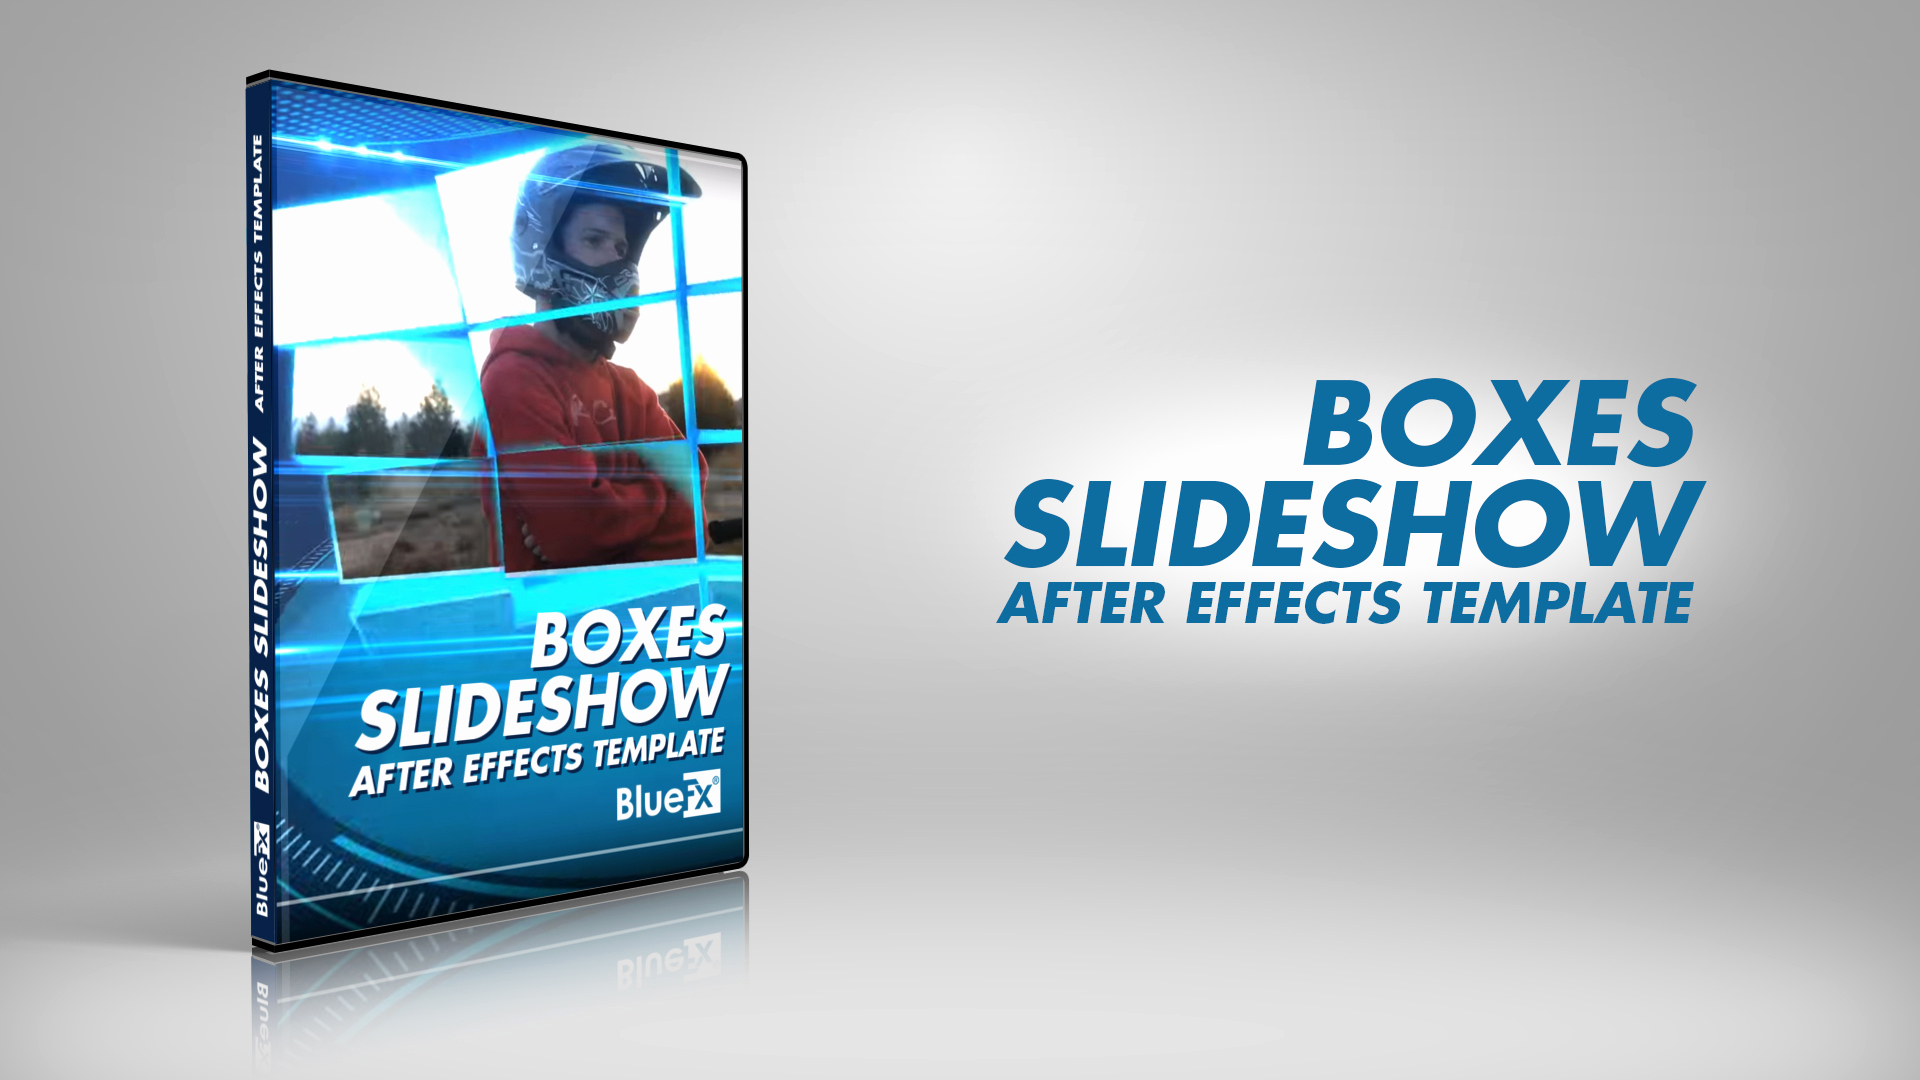 After Effects Slideshow Template Beautiful Boxes Slide after Effects Template